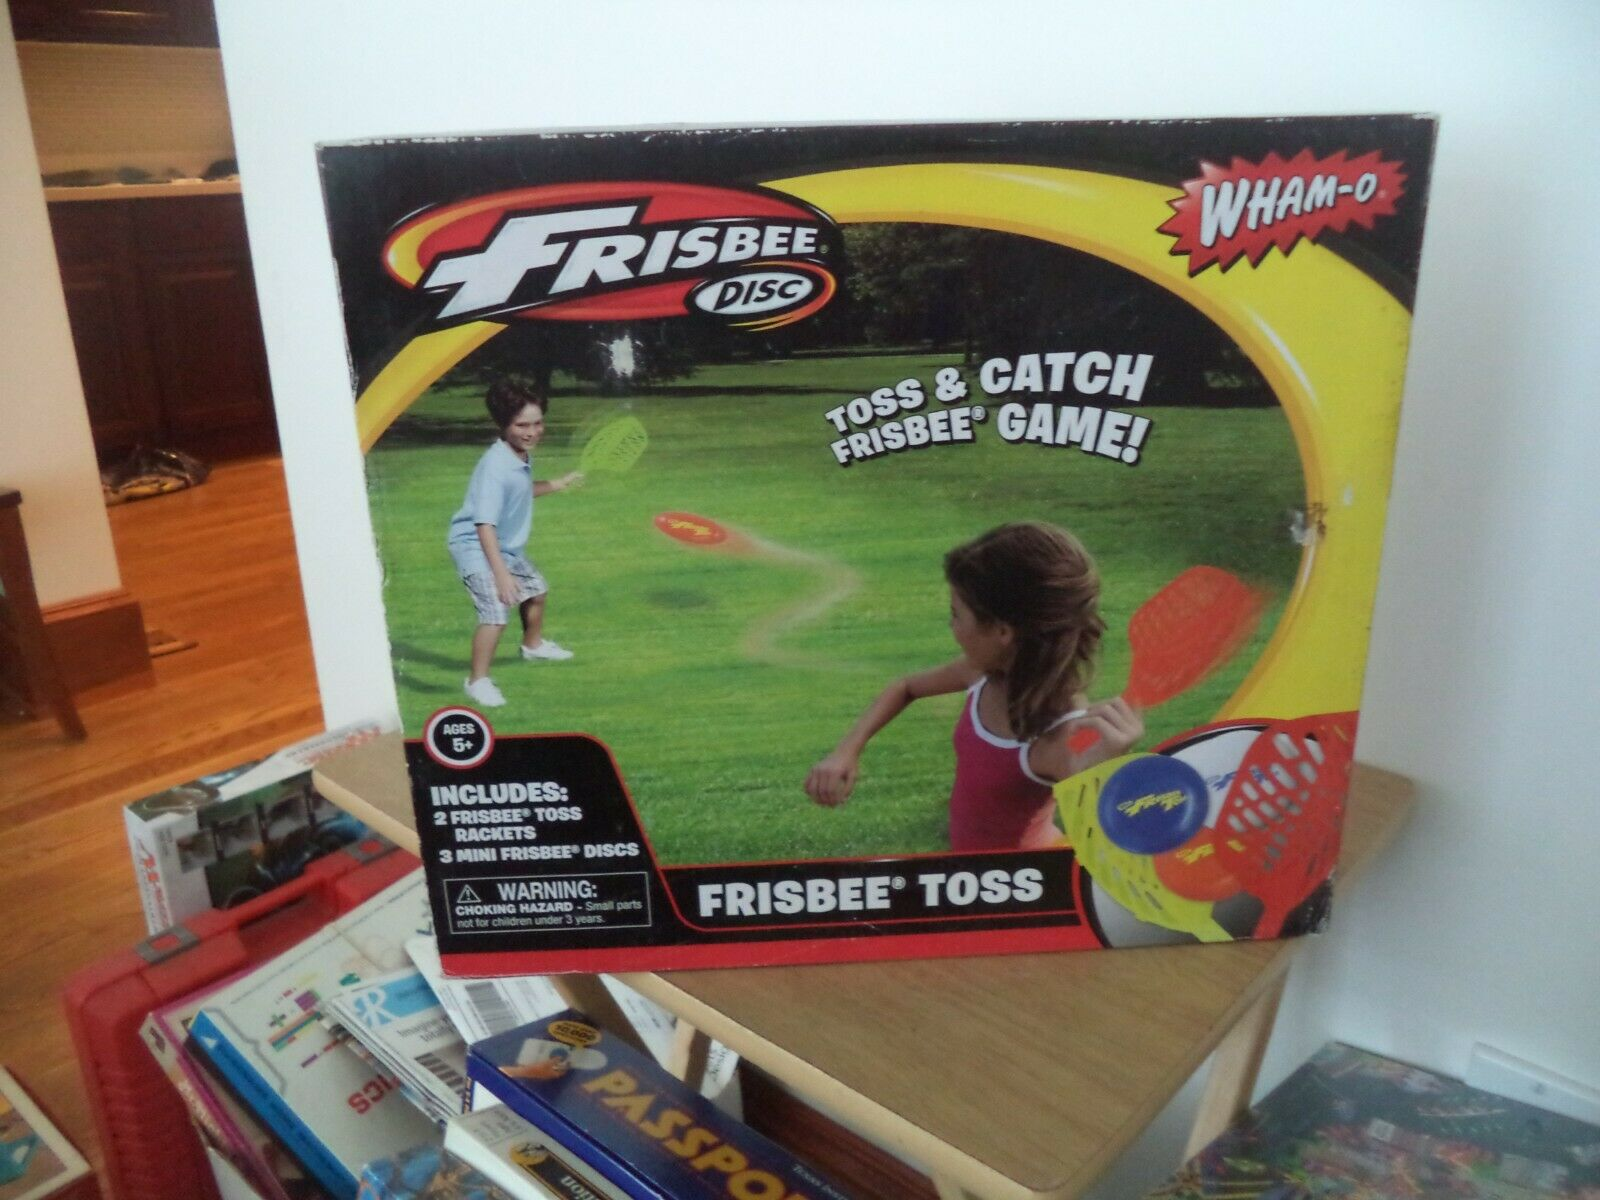 Frisbee Disc Toss and Catch Game